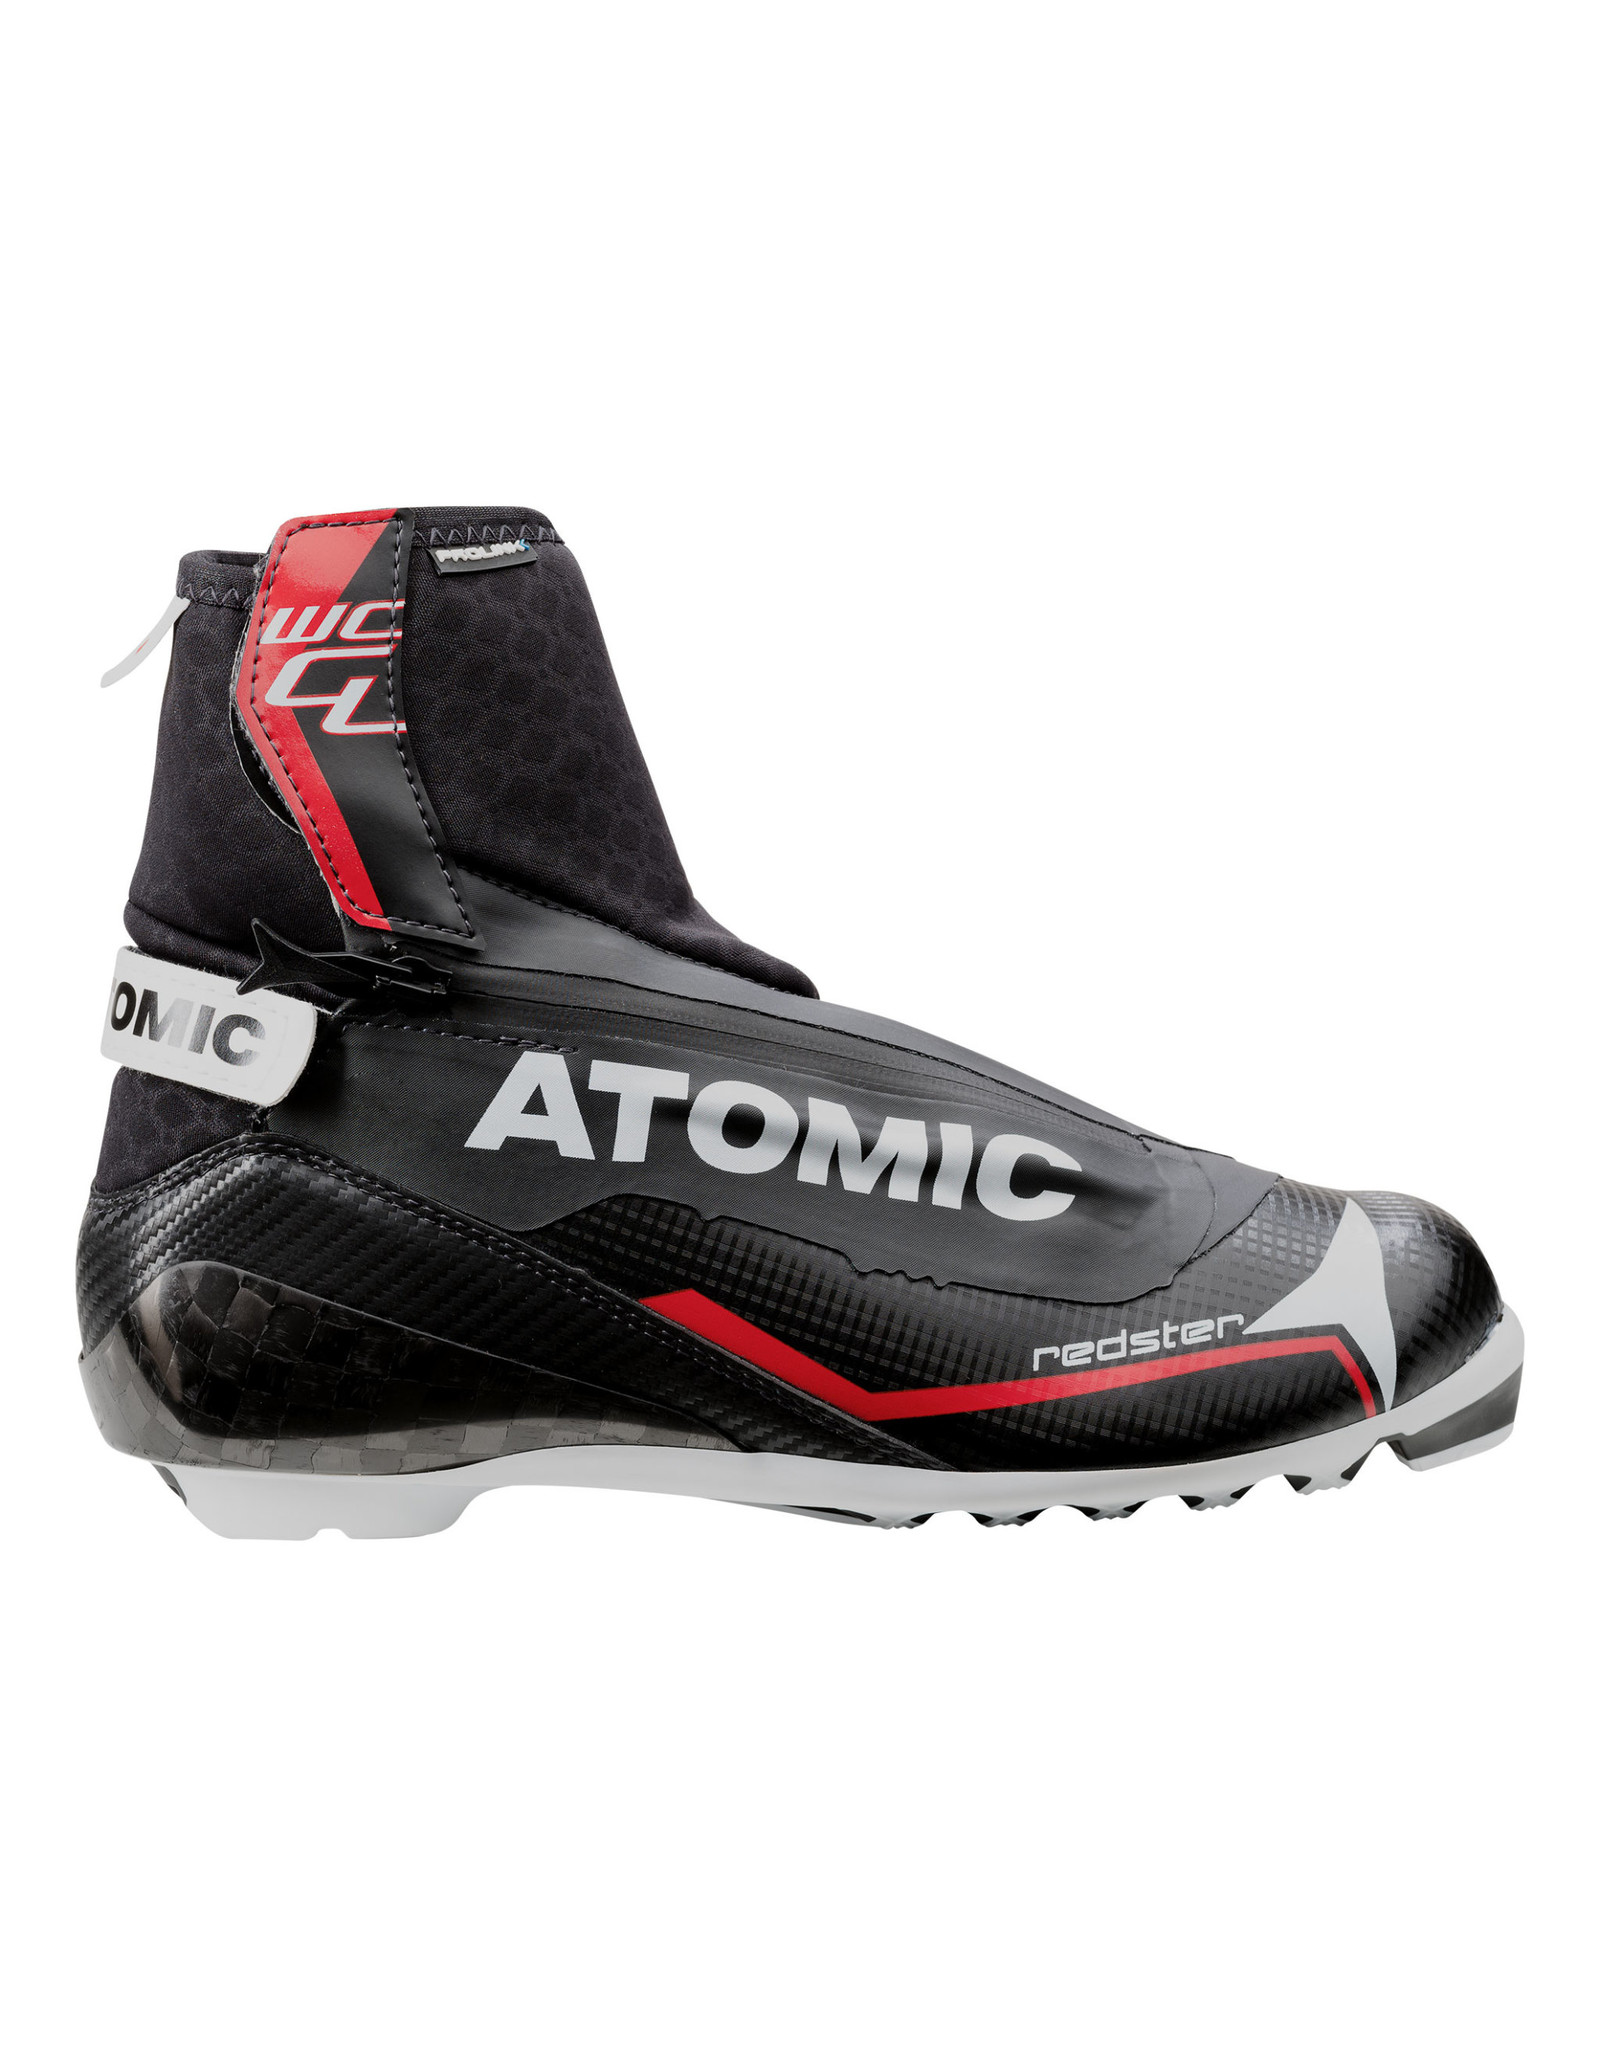 Atomic Atomic Redster WC Classic Boot Prolink